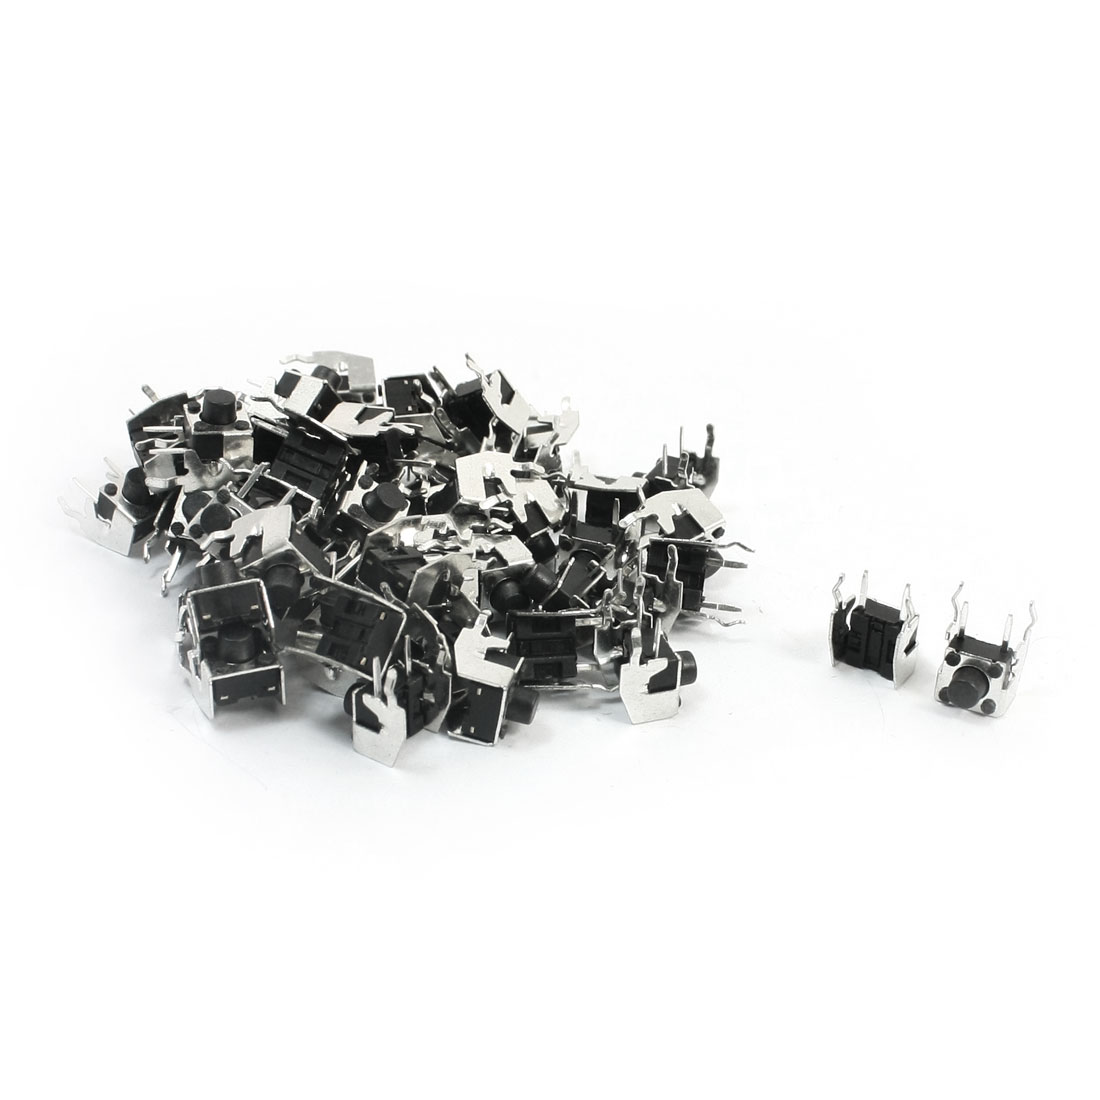 55Pcs Momentary PCB Side Mounting Fixed Bracket Pushbutton Push Button Tact Tactile Switch DIP 2 Terminals6mmx6mmx6mm